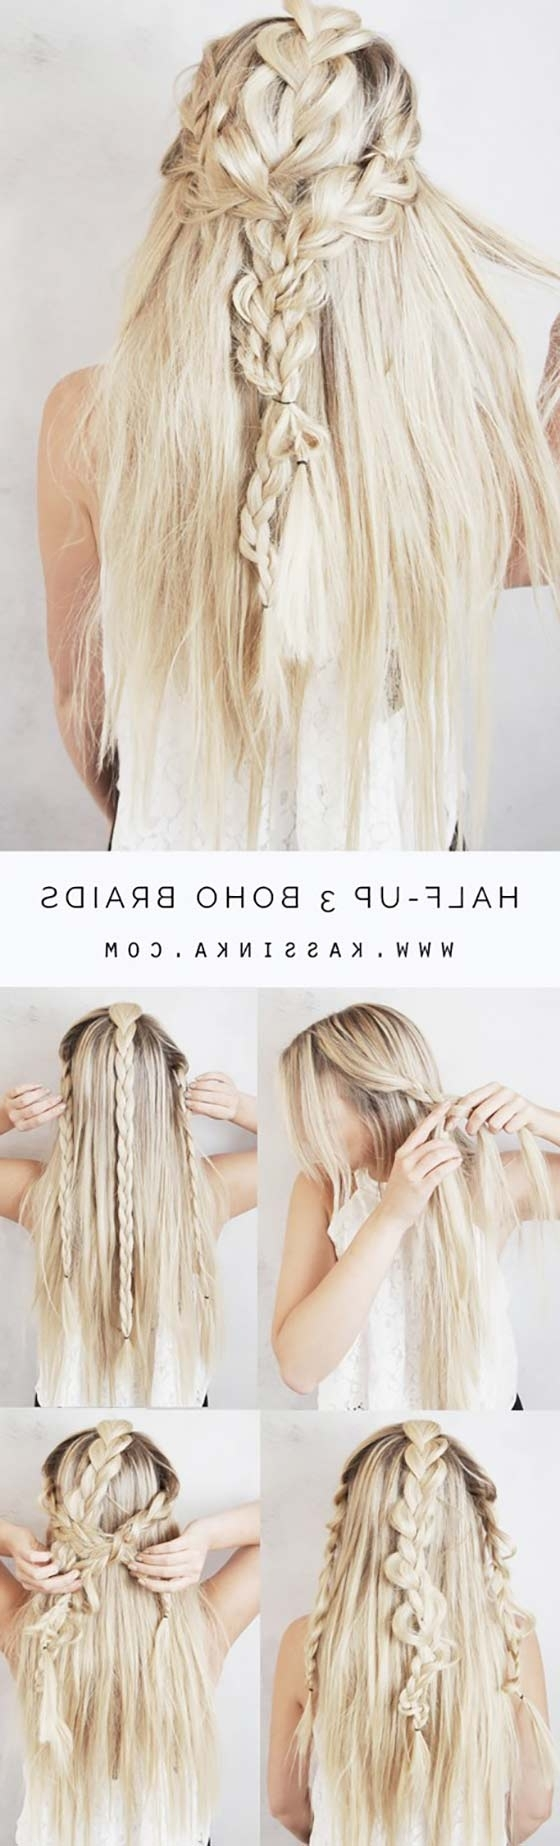 40 Braided Hairstyles For Long Hair In Most Current Braided Hairstyles For Long Hair (View 4 of 15)